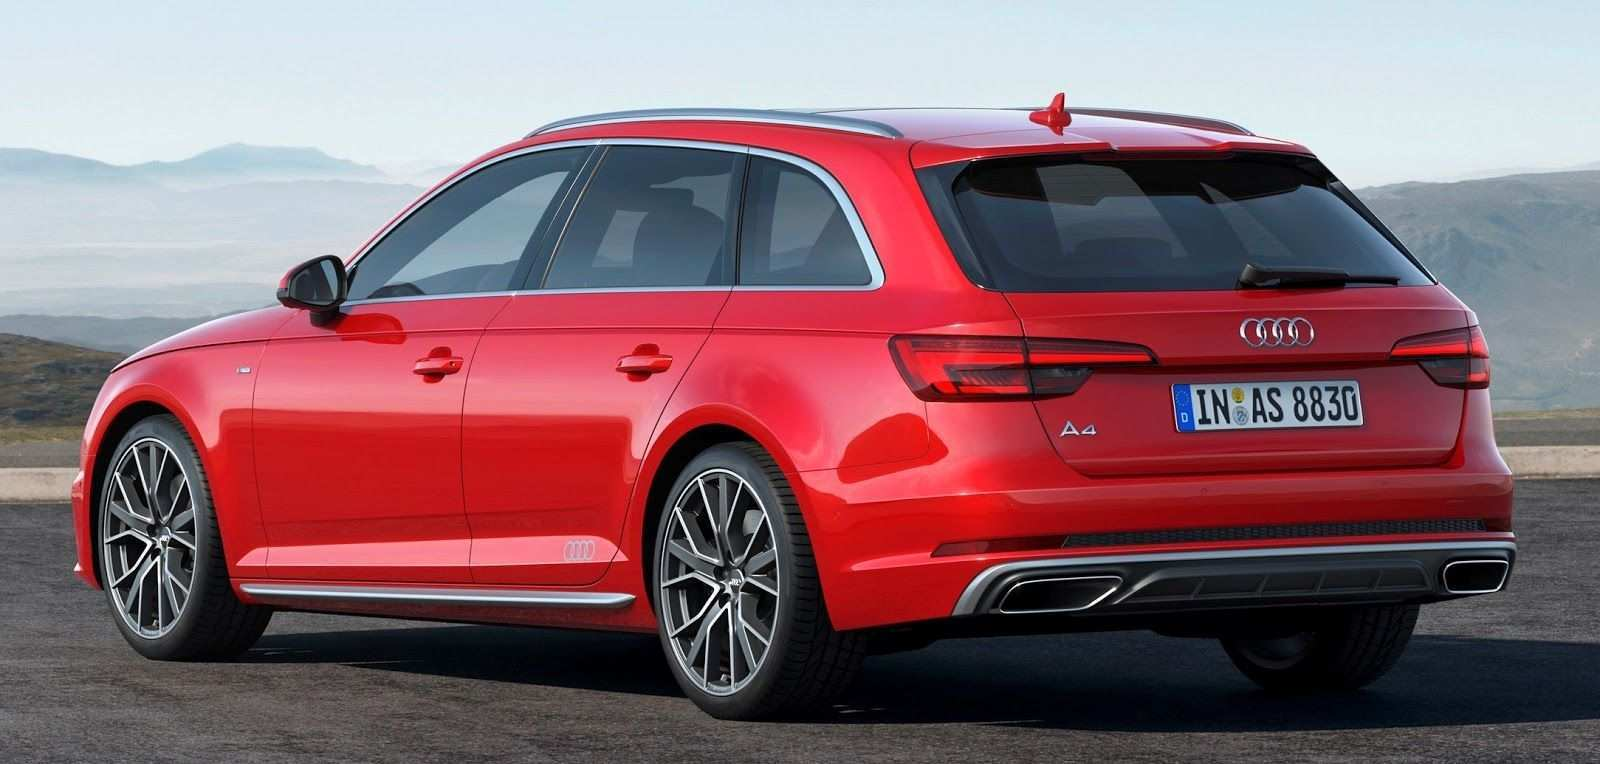 93 All New Linha Audi 2019 New Review Redesign and Concept for Linha Audi 2019 New Review